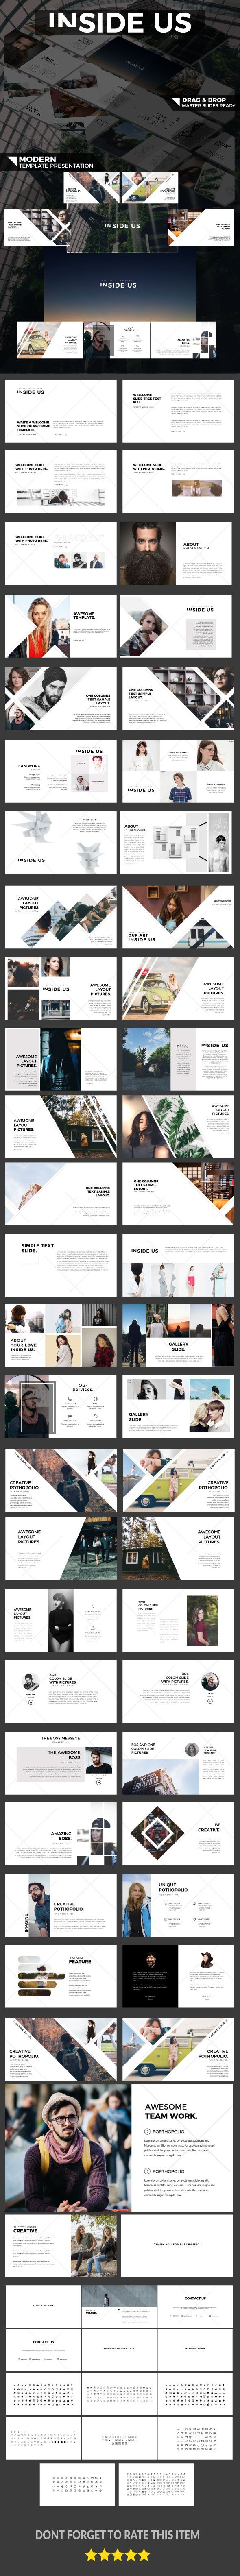 INSIDE US - Modern Presentation - Business PowerPoint Templates